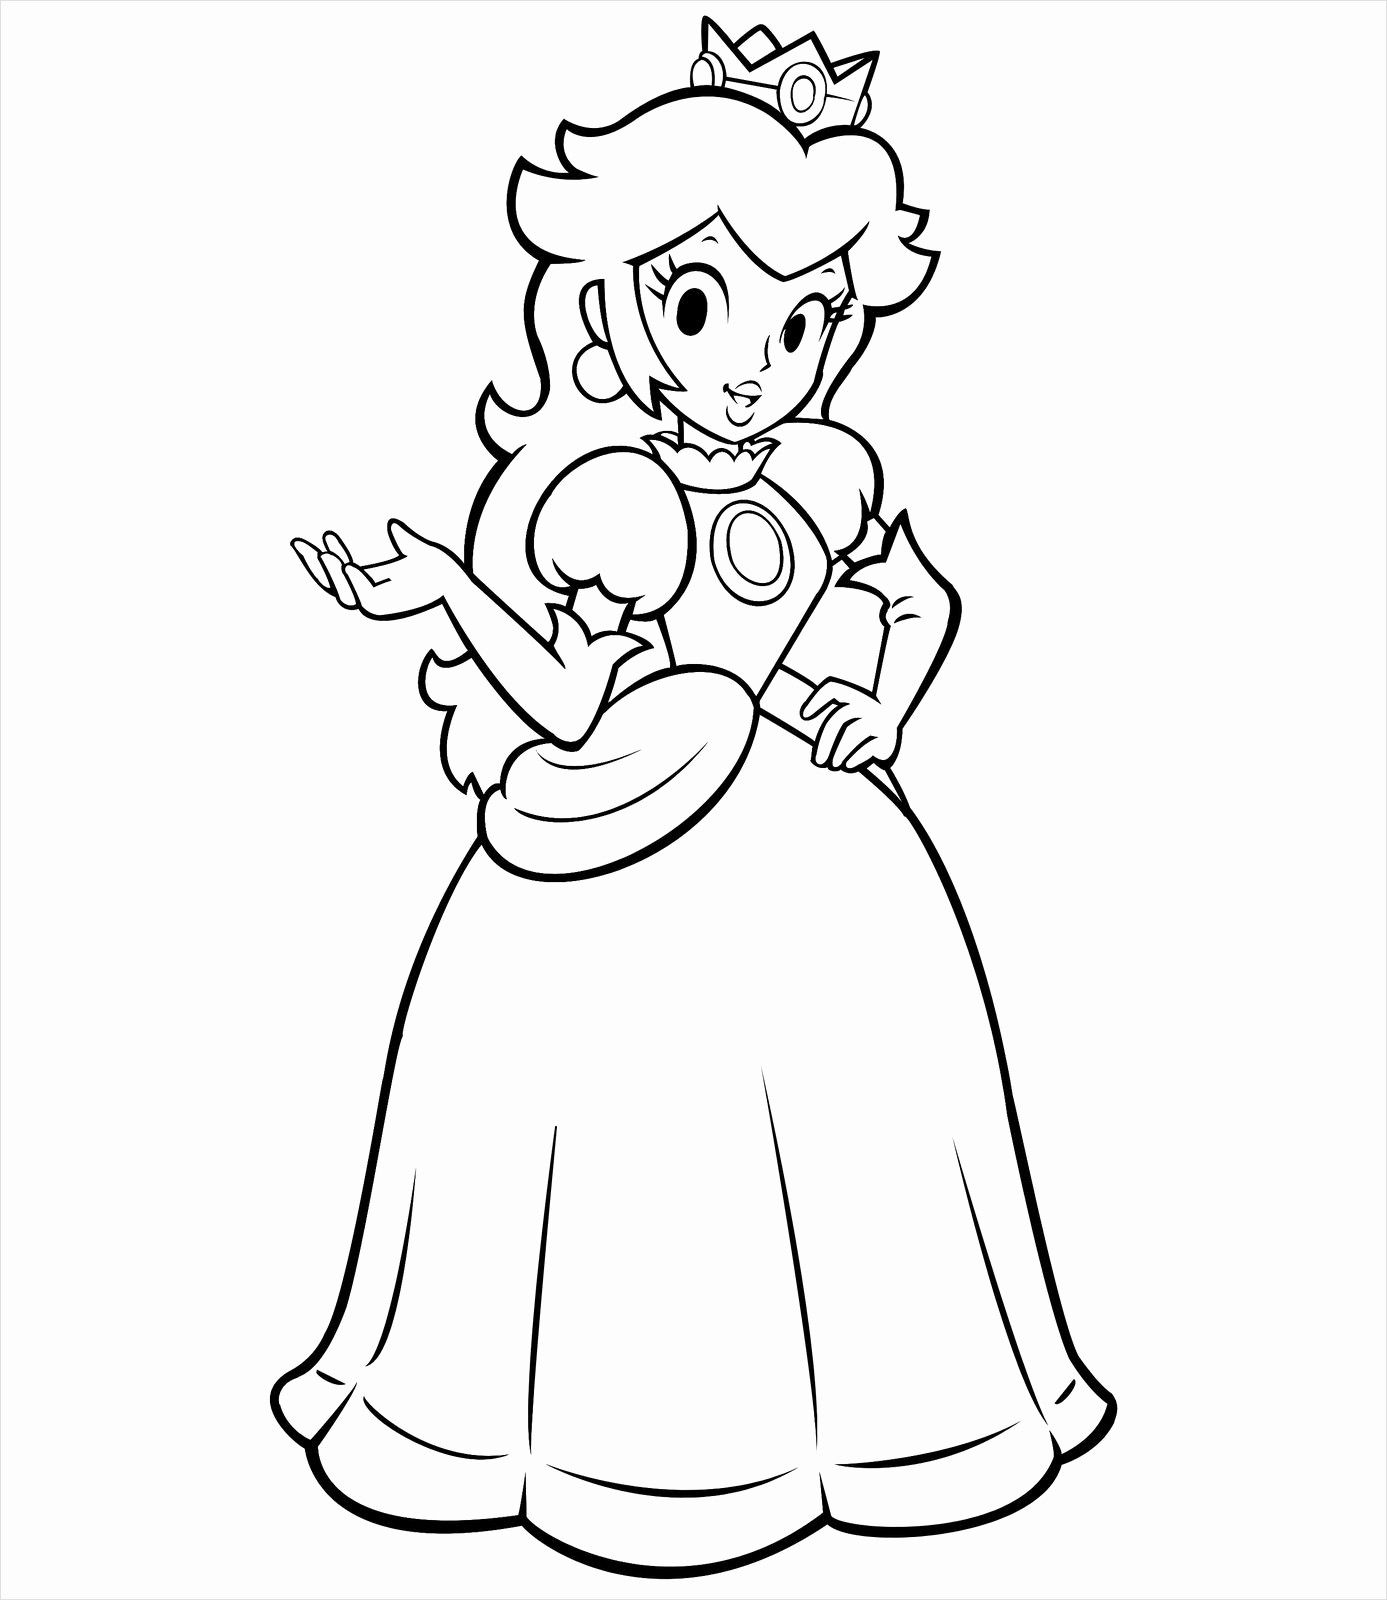 Coloring Pages Of Princess Peach And Princess Daisy Through The Thousands Of Images O Princess Coloring Pages Mario Coloring Pages Super Mario Coloring Pages